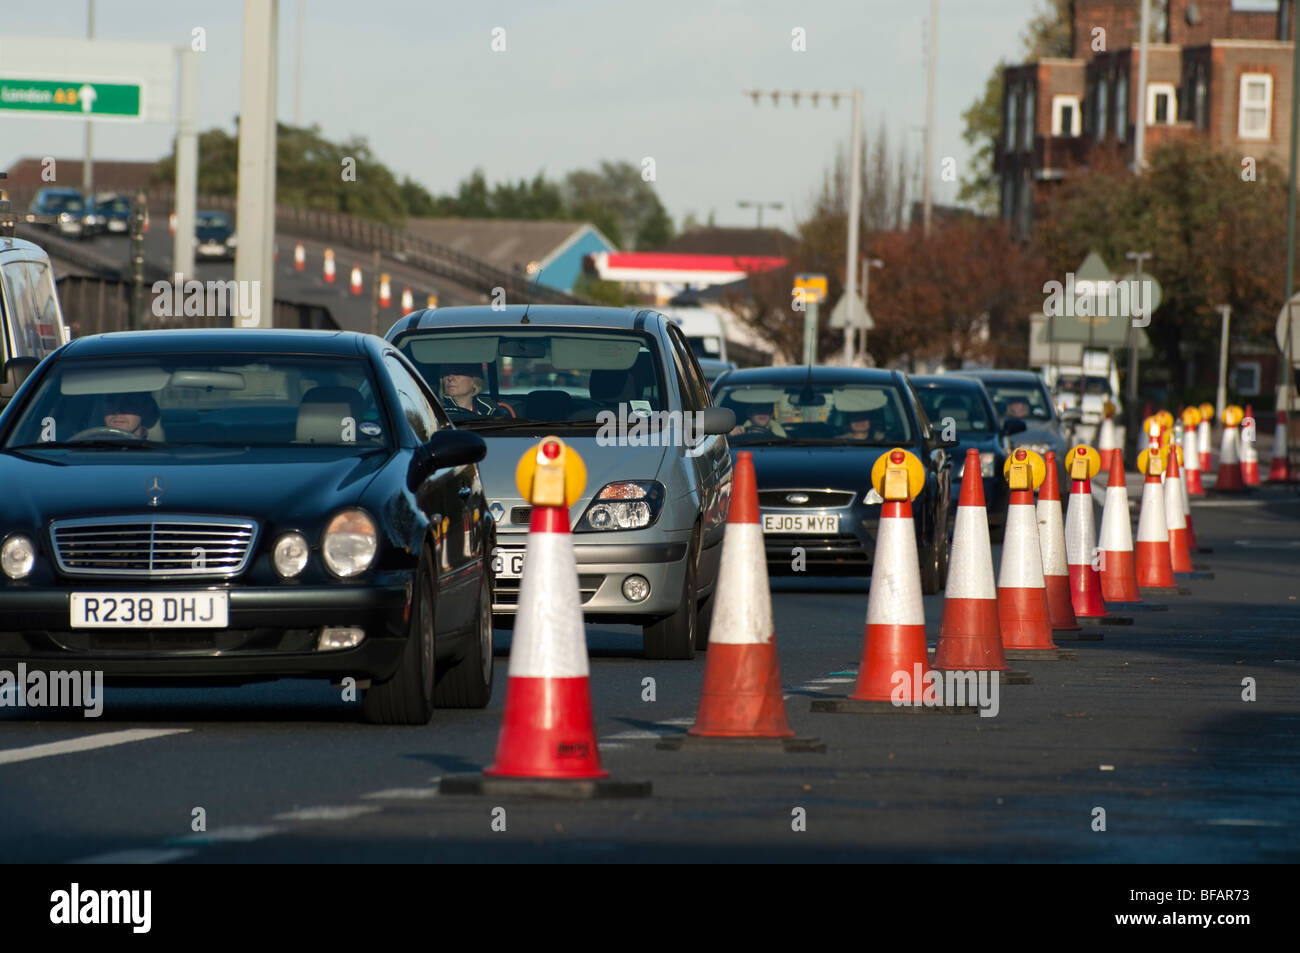 cars pass road works and traffic cones - Stock Image